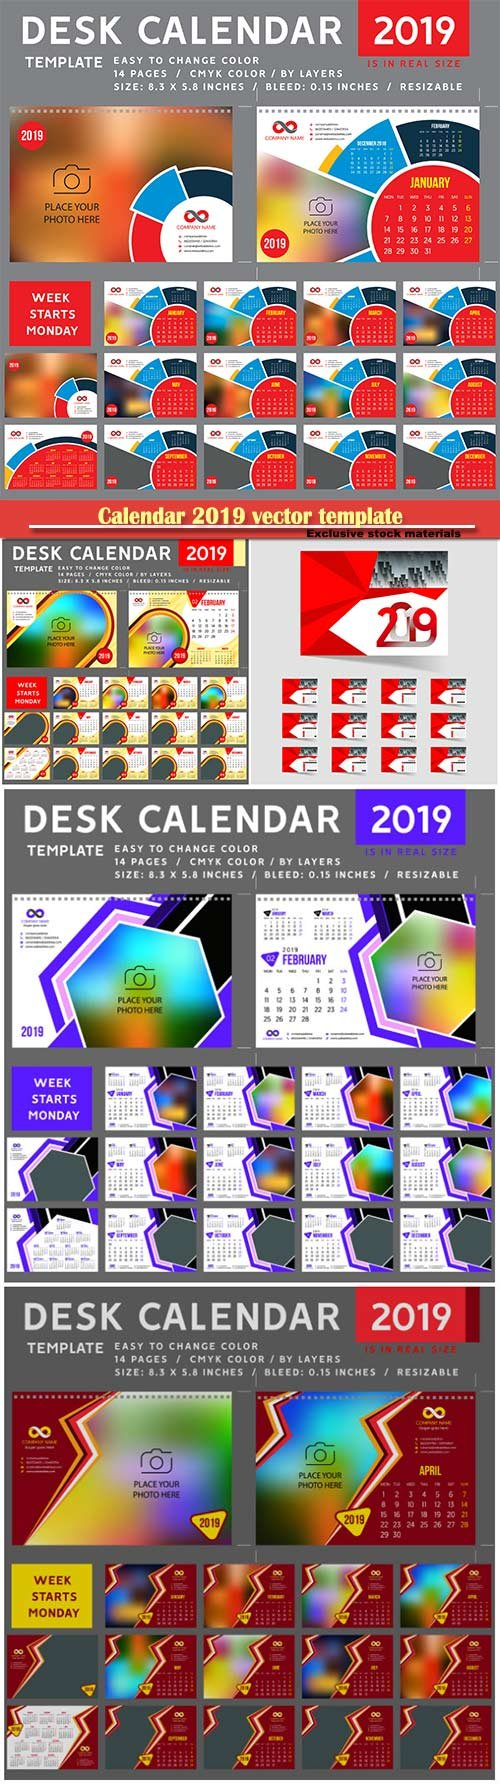 Calendar 2019 vector template, 12 months included # 3